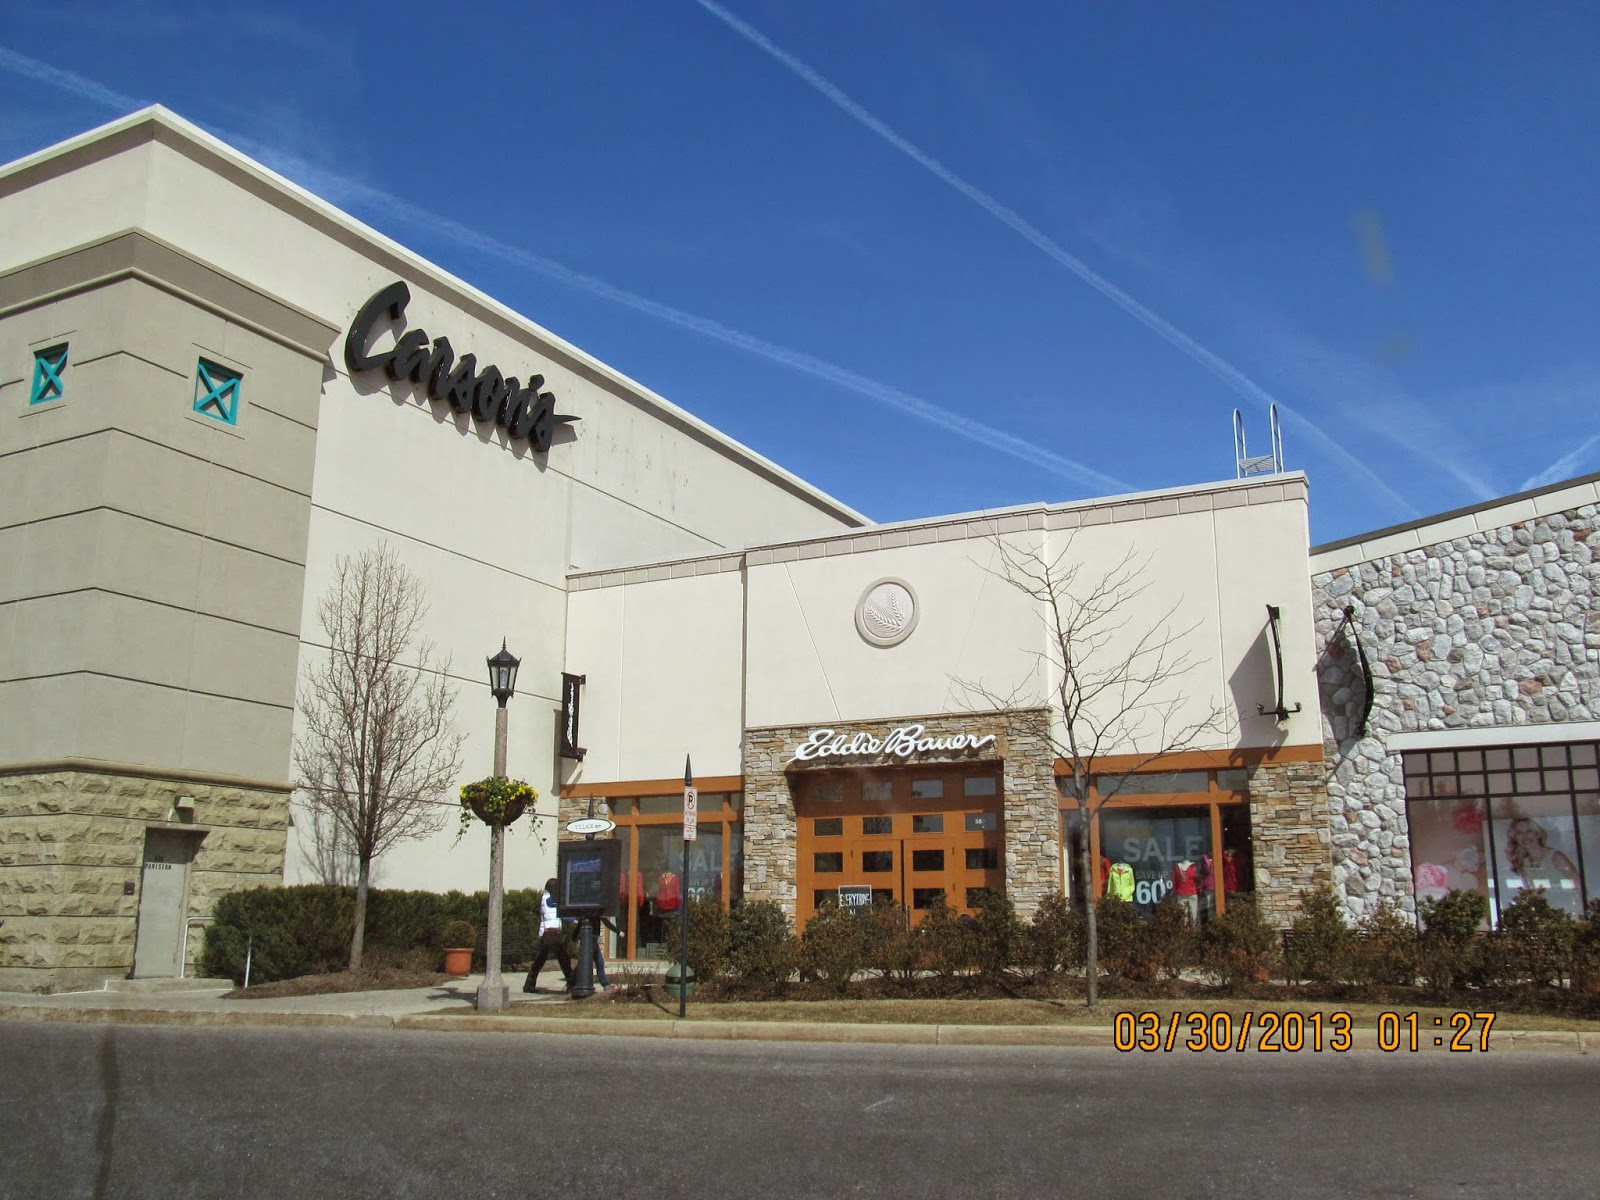 As mentioned previously in our North Park Mall posting, the Chicagoland area was spotted with small, enclosed neighborhood malls built during the late s and early s during a trend in this type of retailing. In around or , St. Charles Mall opened on the west side of St. Charles near the intersection of IL [ ].